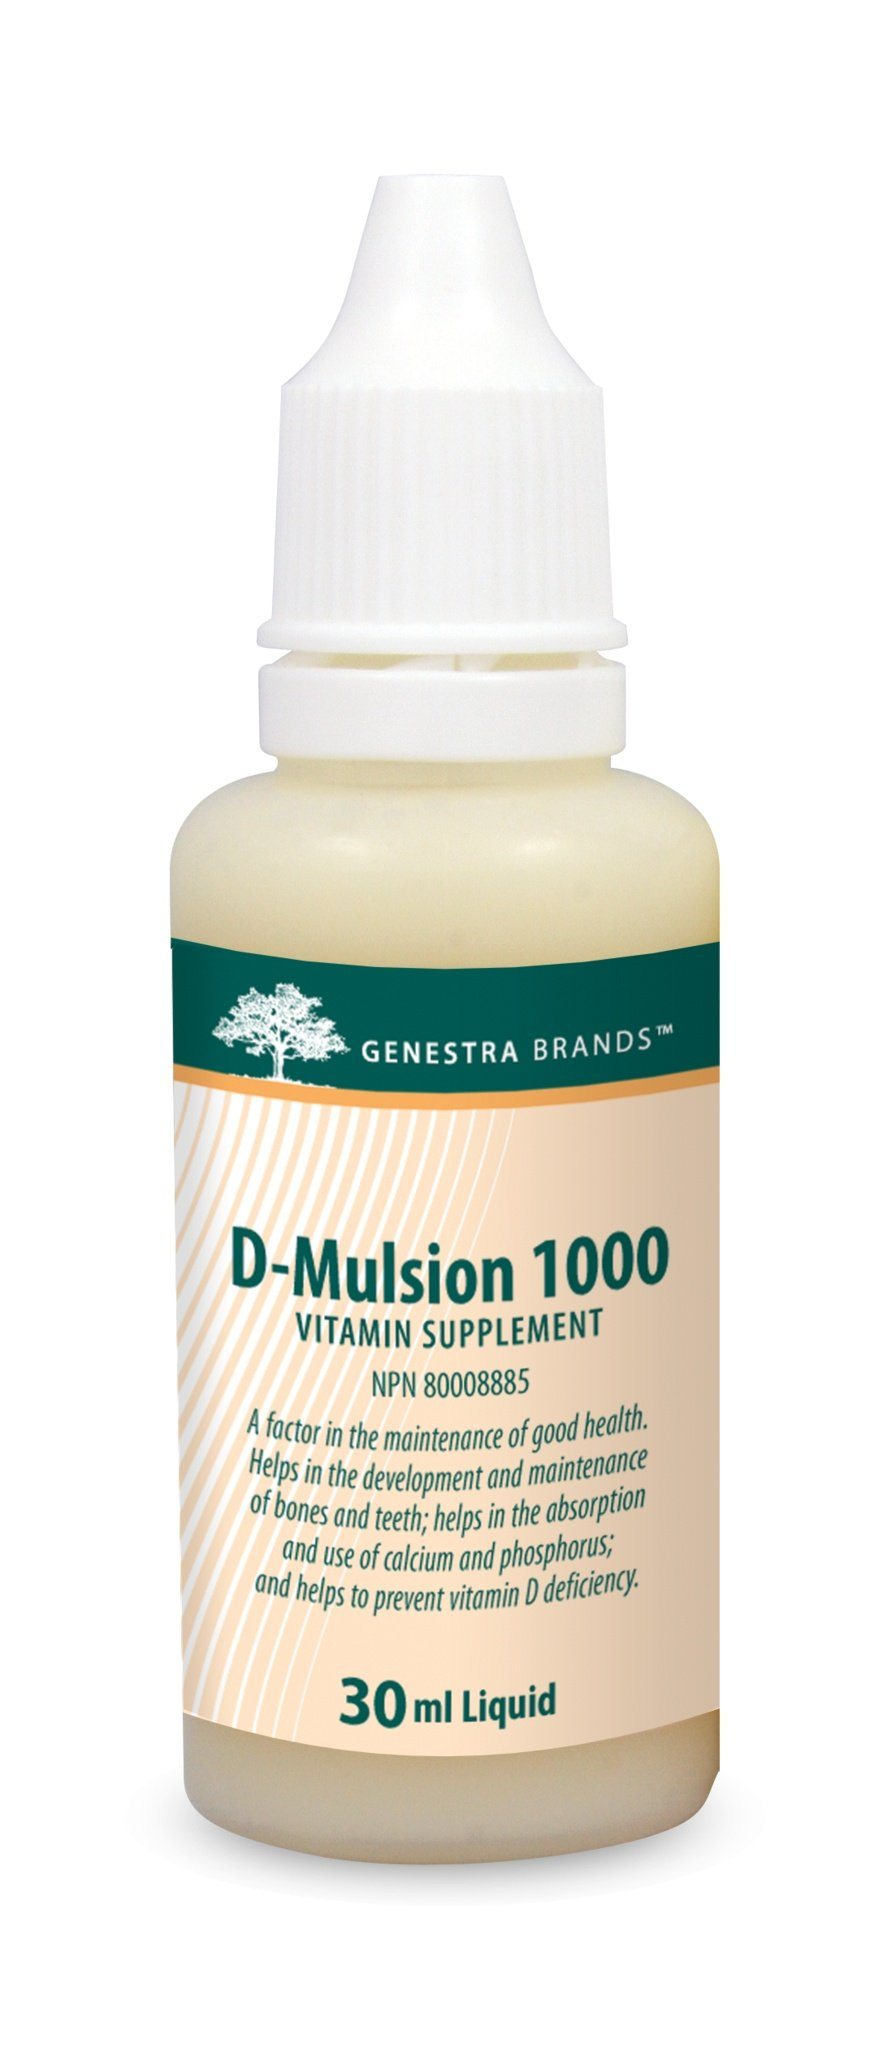 Supplements & Vitamins - Genestra - D-Mulsion 1000, 30ml